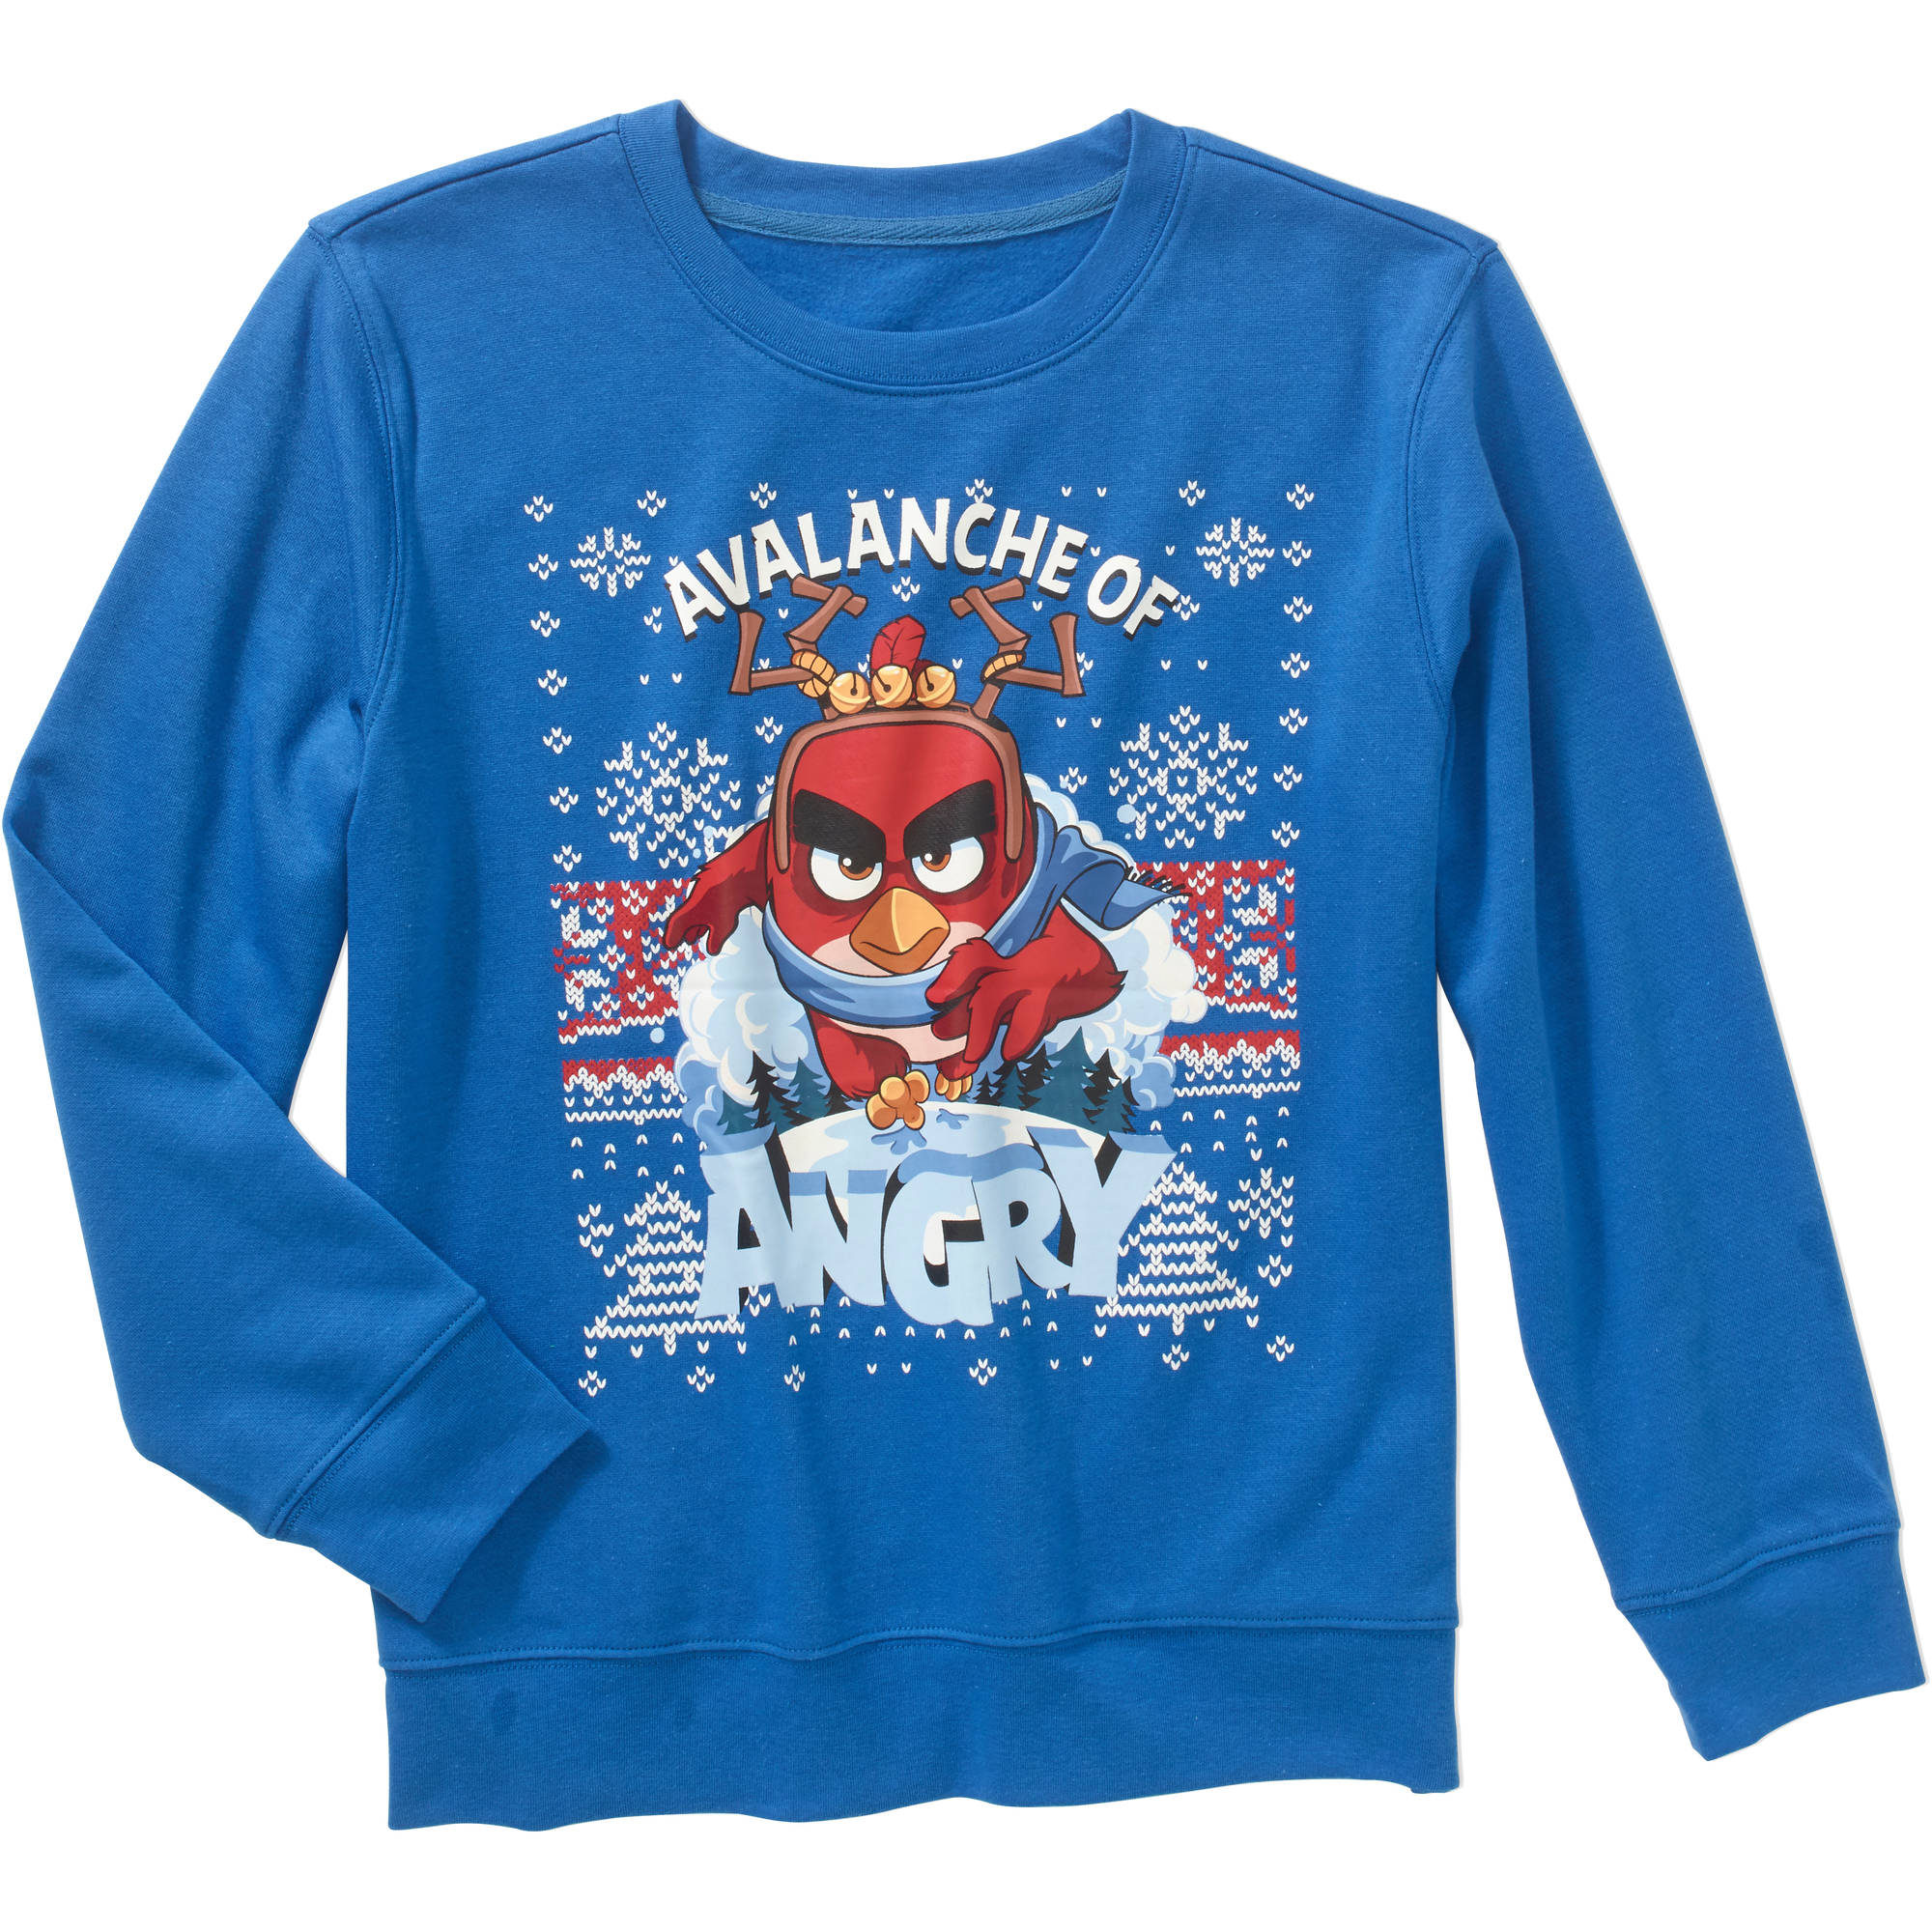 "Angry Birds ""Avalanche of Angry"" Boys' Long Sleeve Crewneck Graphic Sweatshirt"